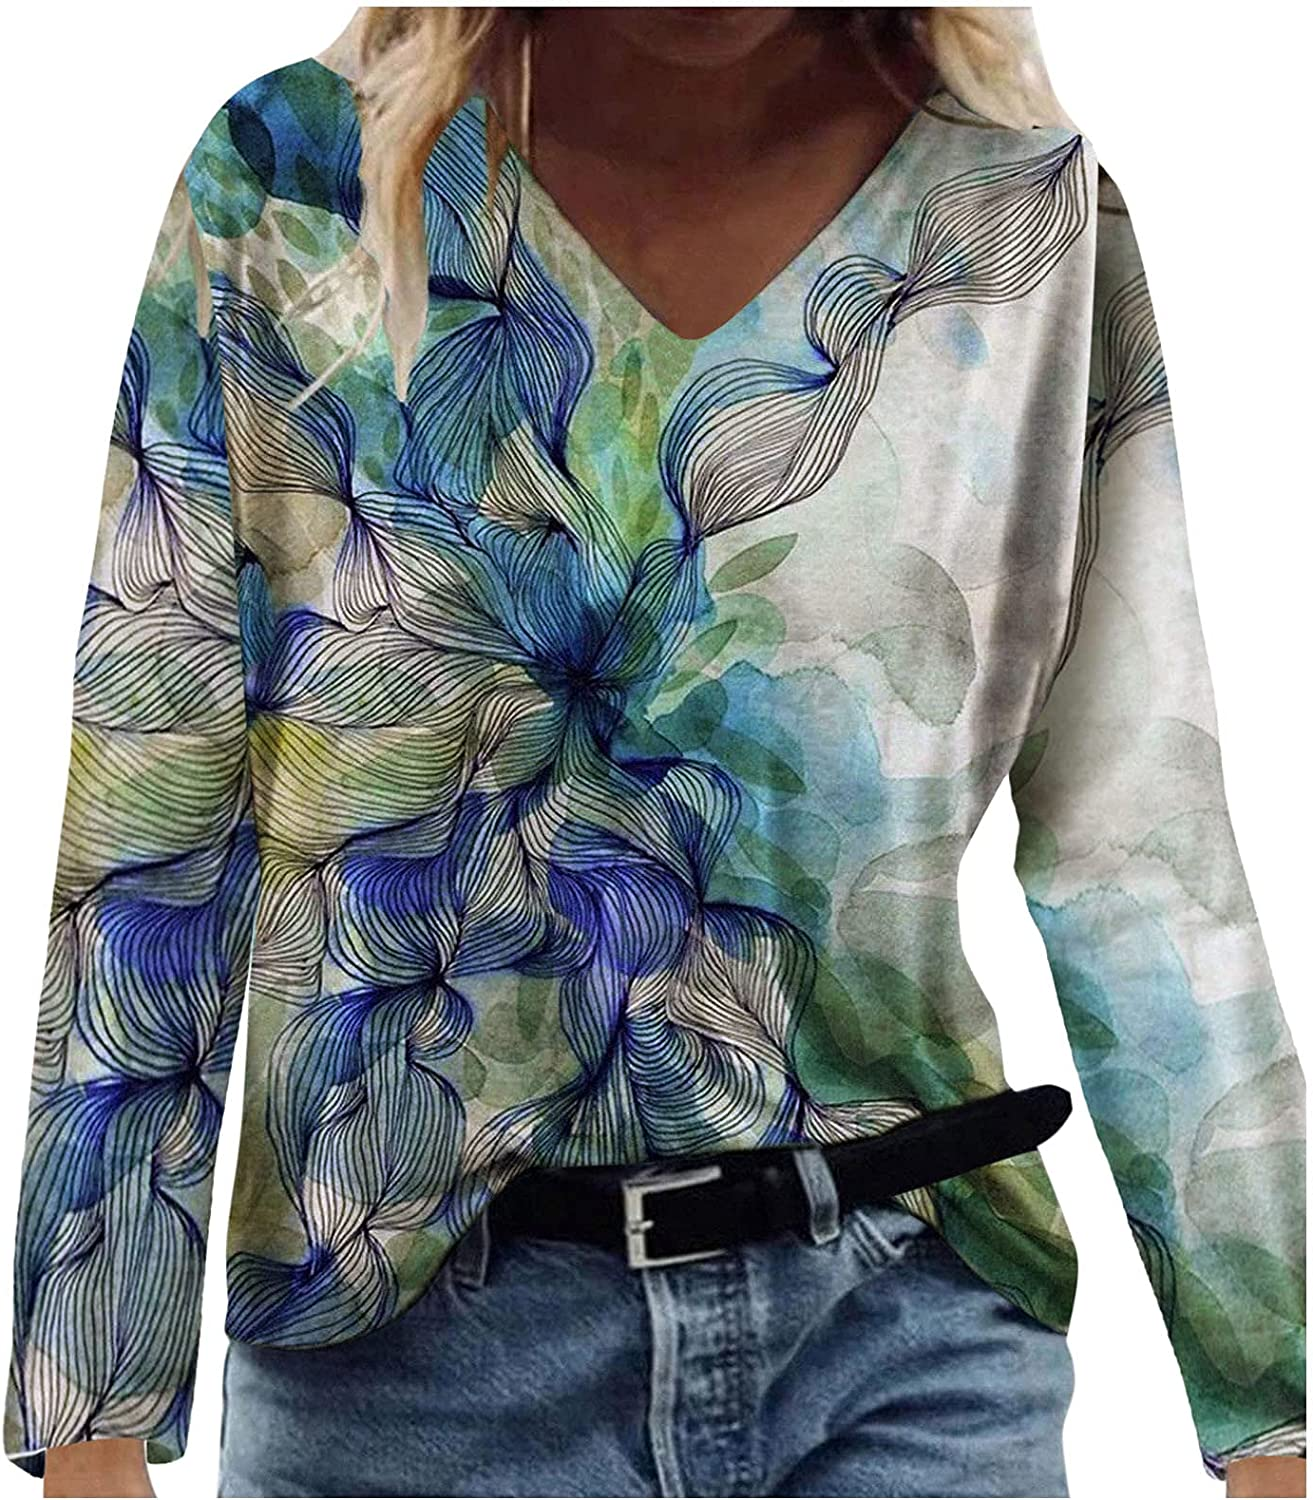 INNOVIERA Long Sleeve Blouses for Women Casual,Womens V Neck Sweatshirts Floral Loose Pullover Vintage Tunic Top Tees Shirts